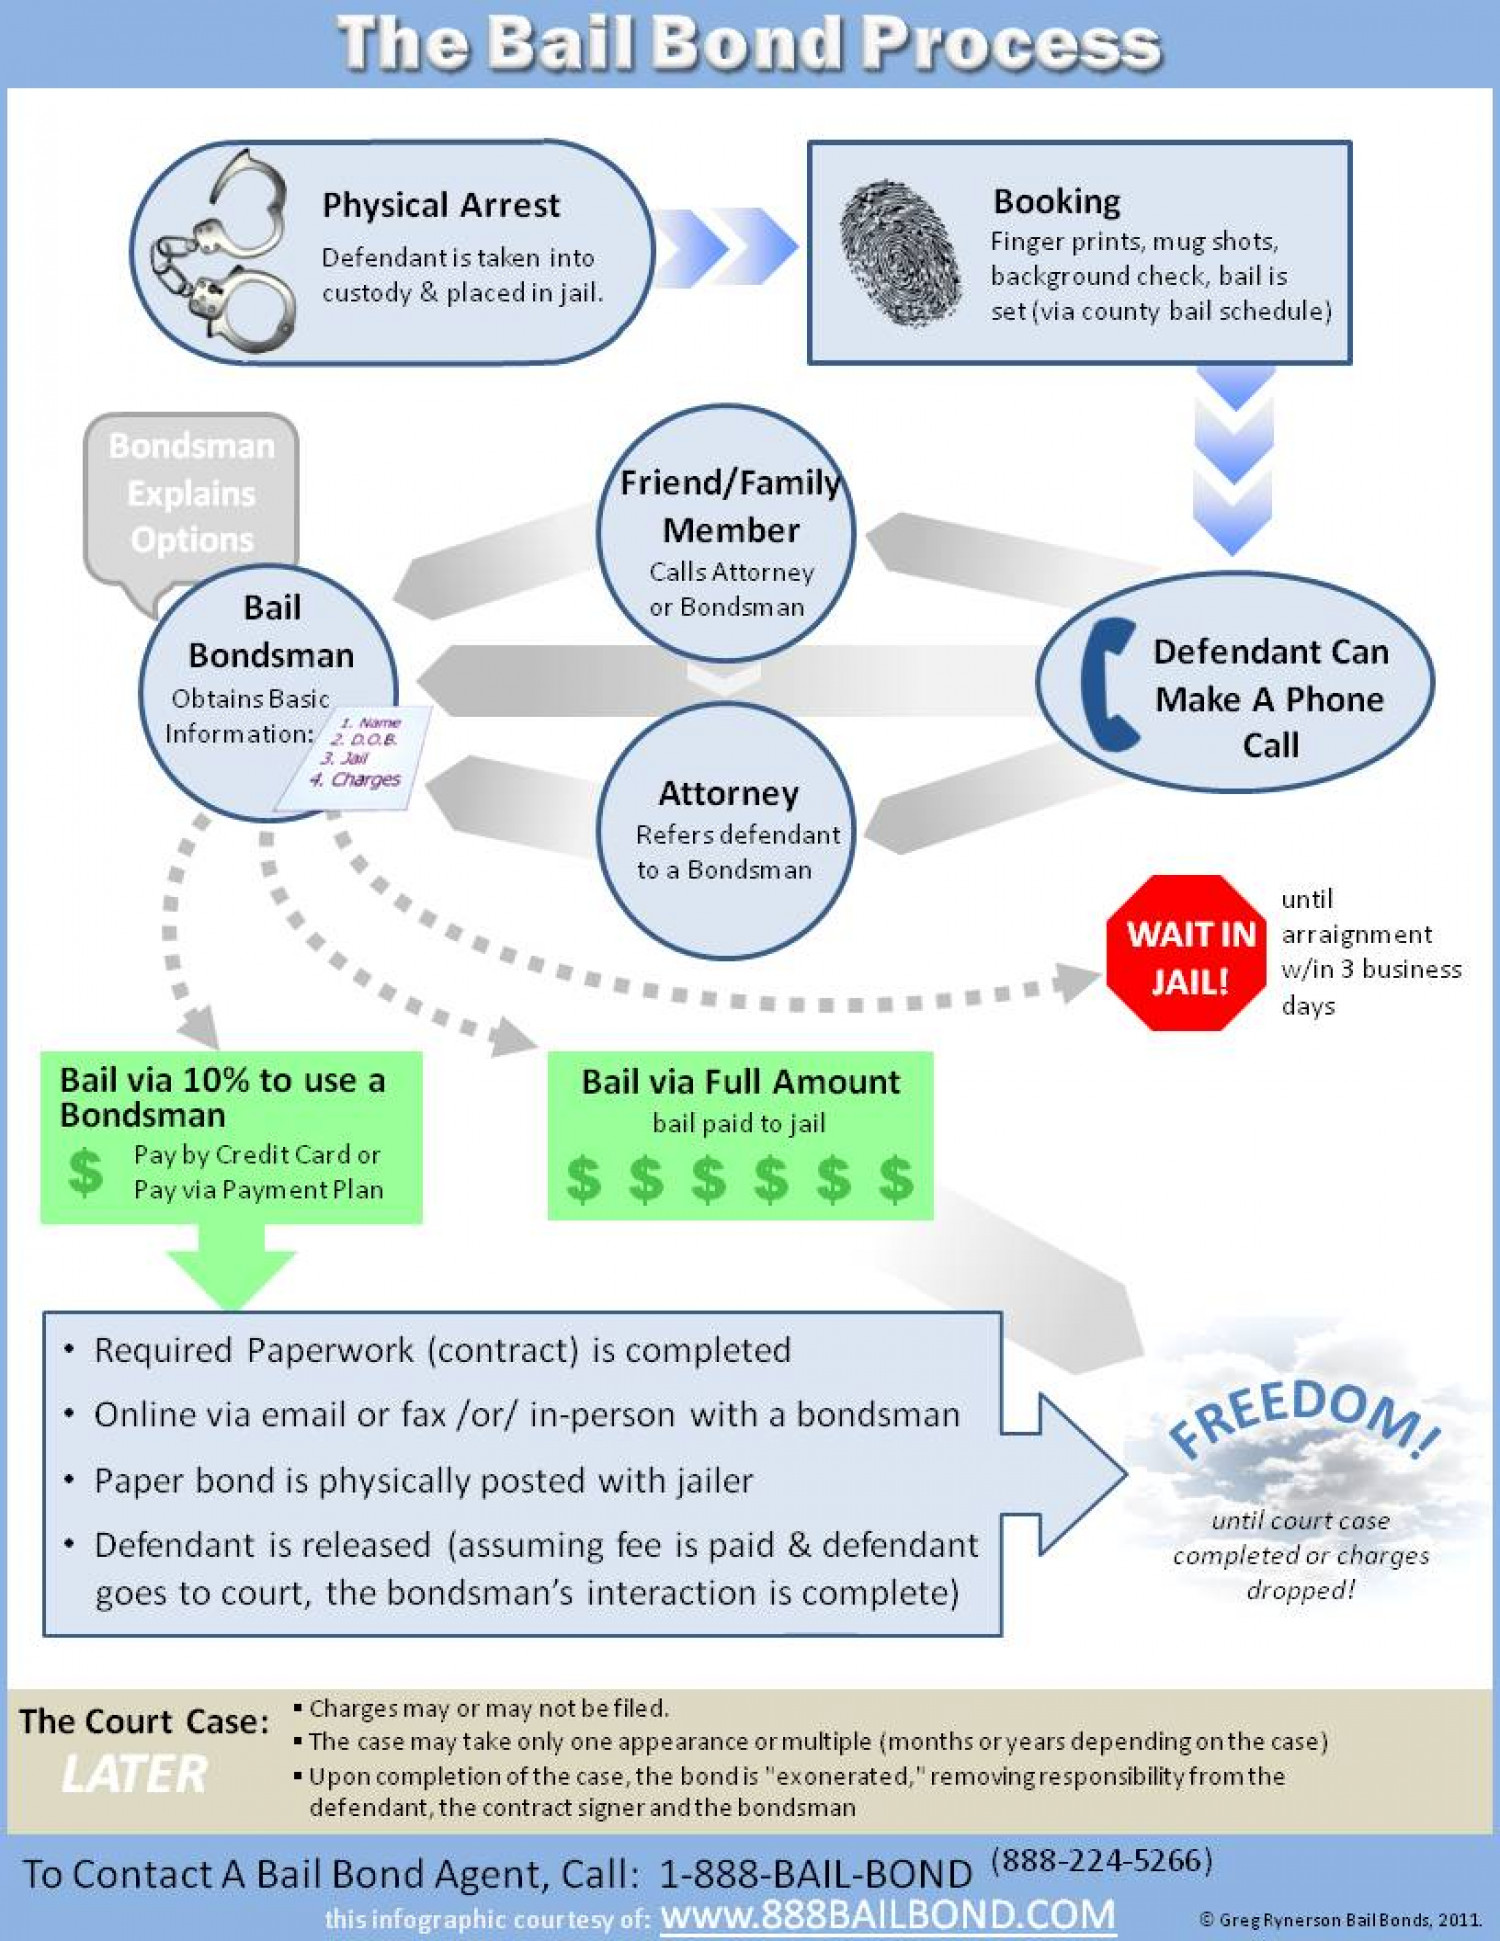 The Bail Bond Process Infographic